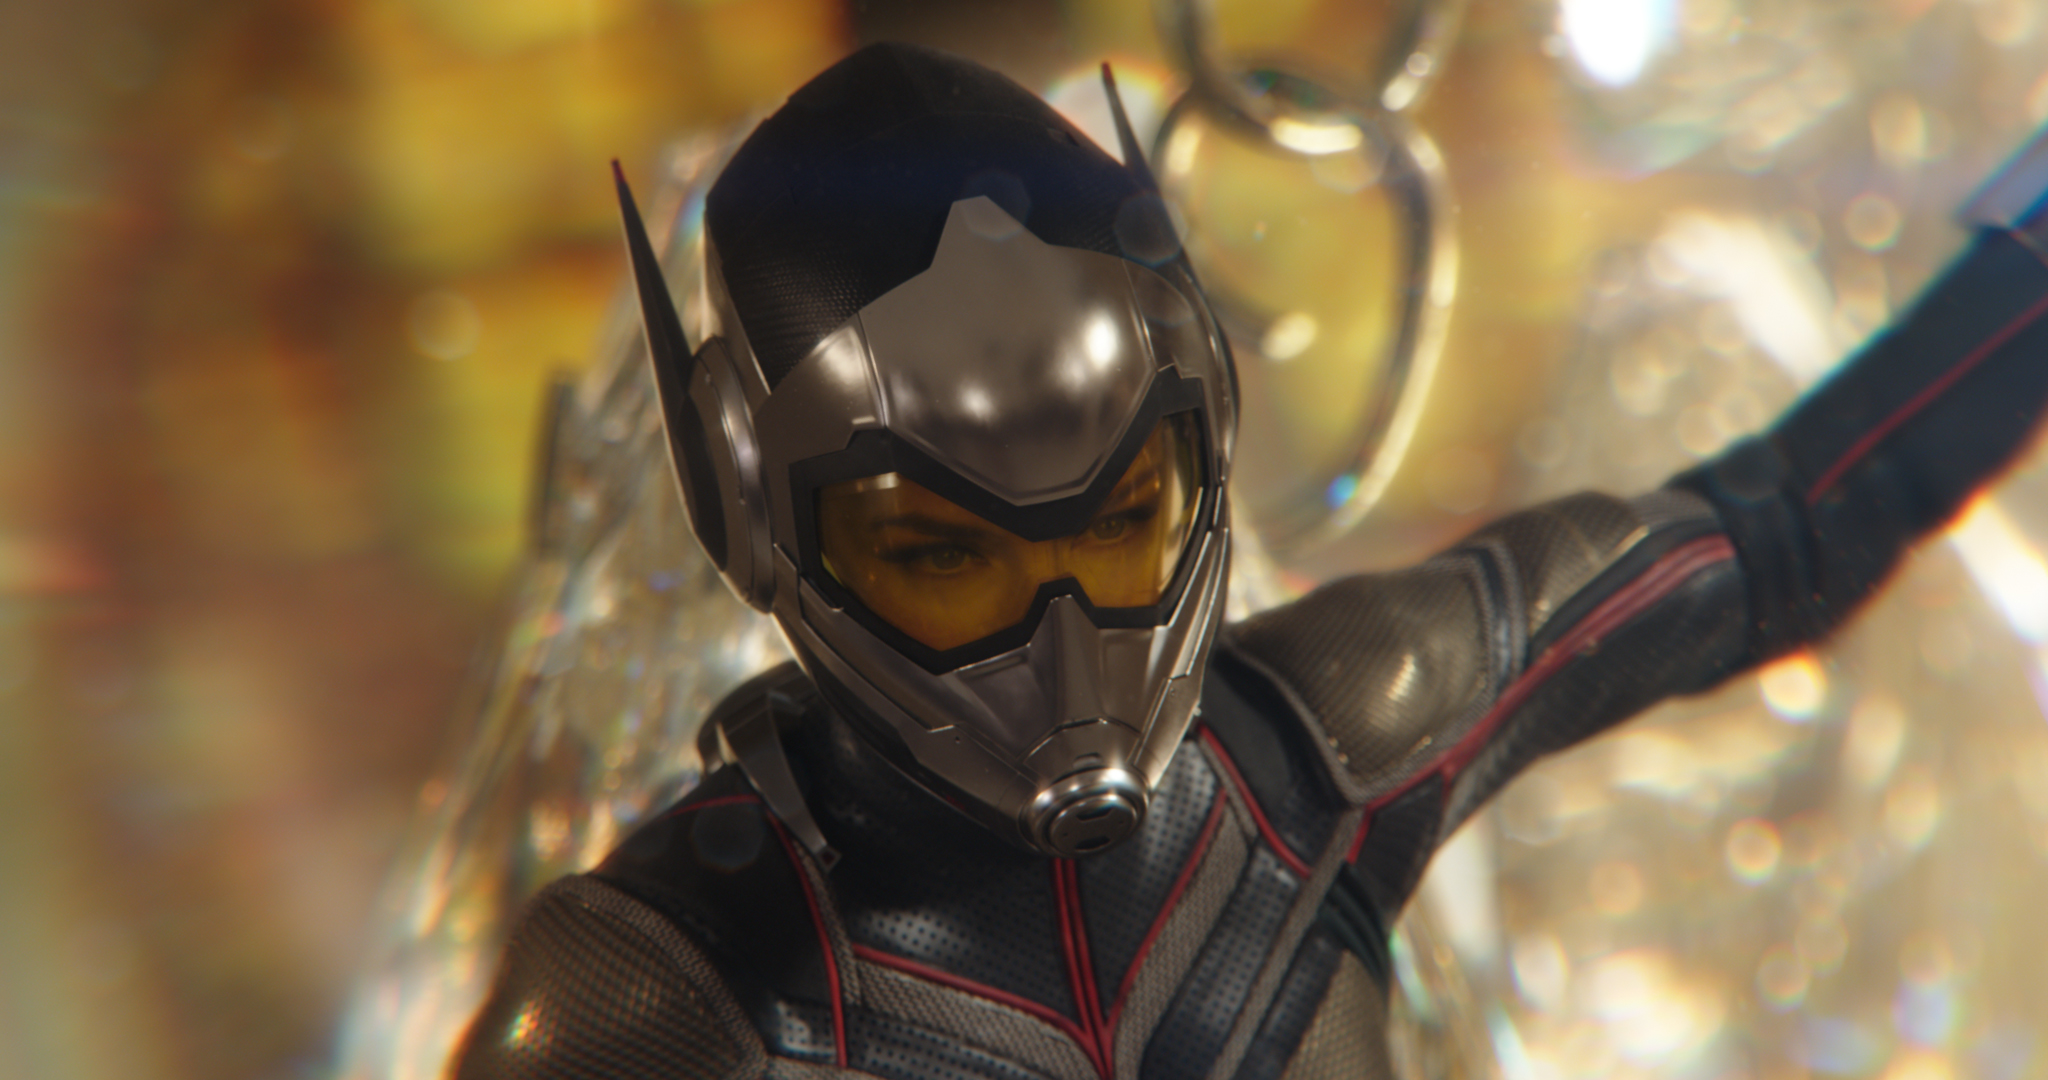 I break down if Ant-Man and the Wasp is appropriate for kids.